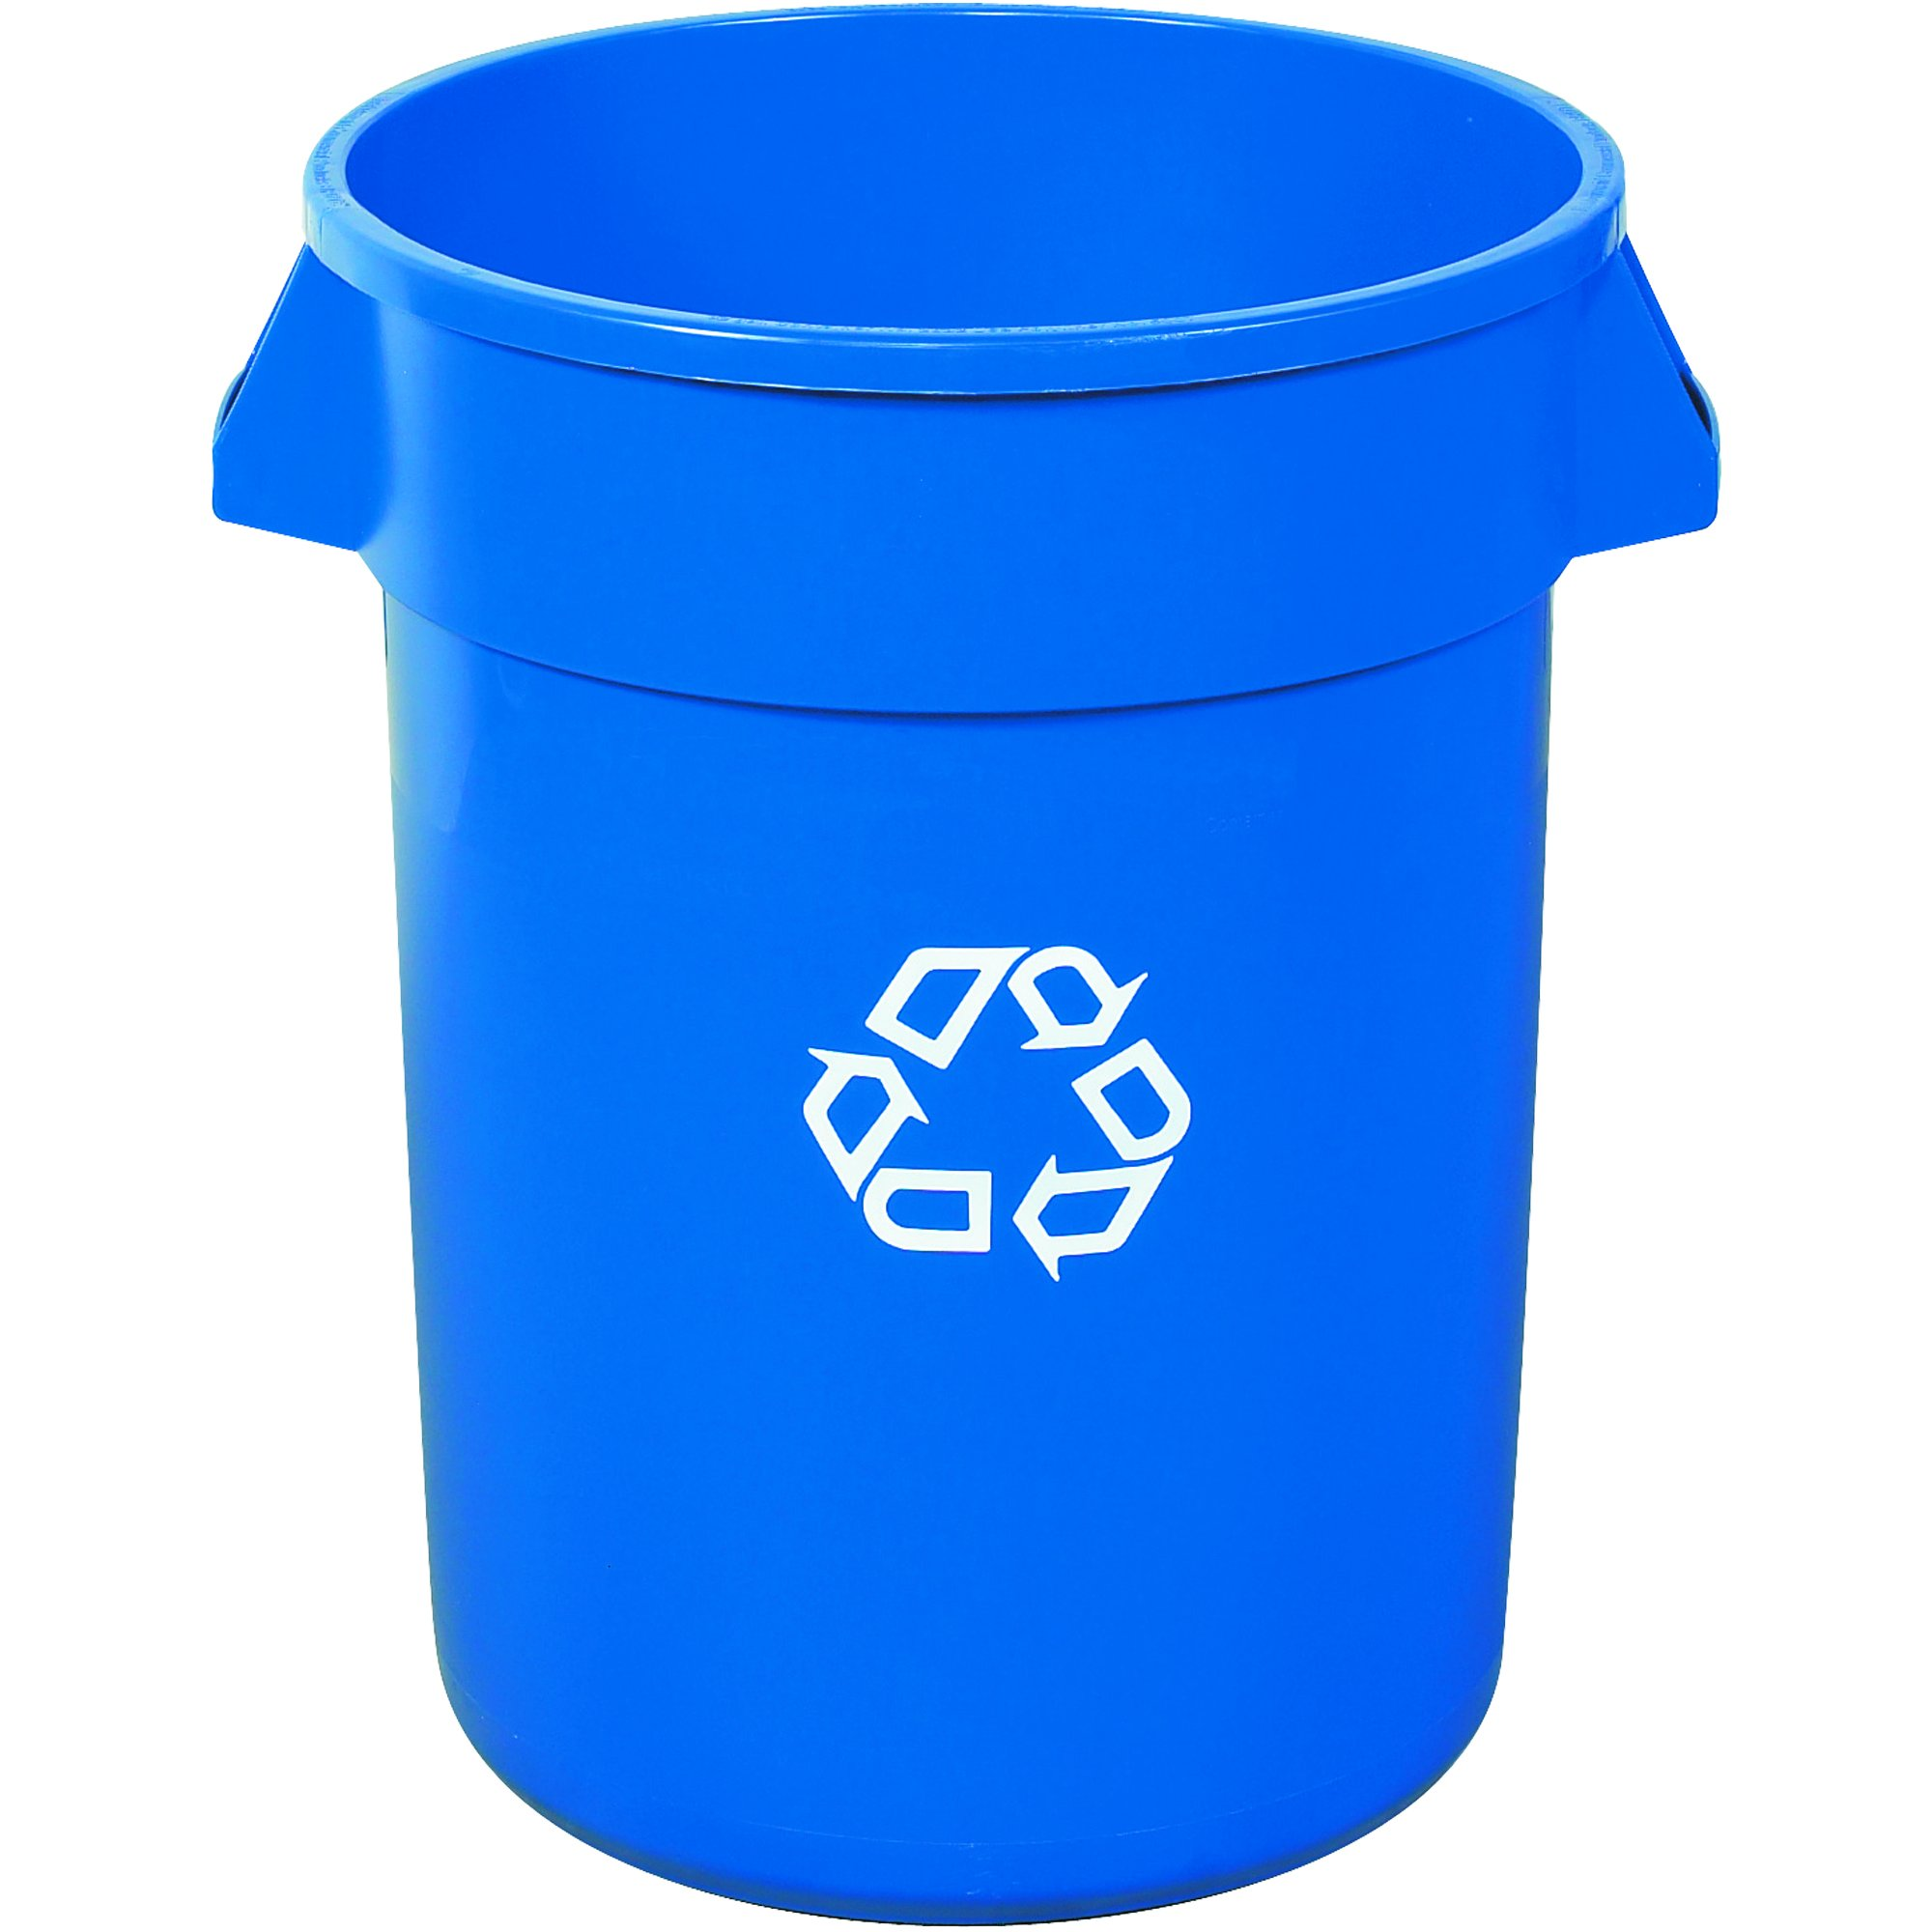 Ship Now Supply SNRUB141 Brute Recycling Container, 32 gal, 22'' width, 27.25'' Height, Blue by Ship Now Supply